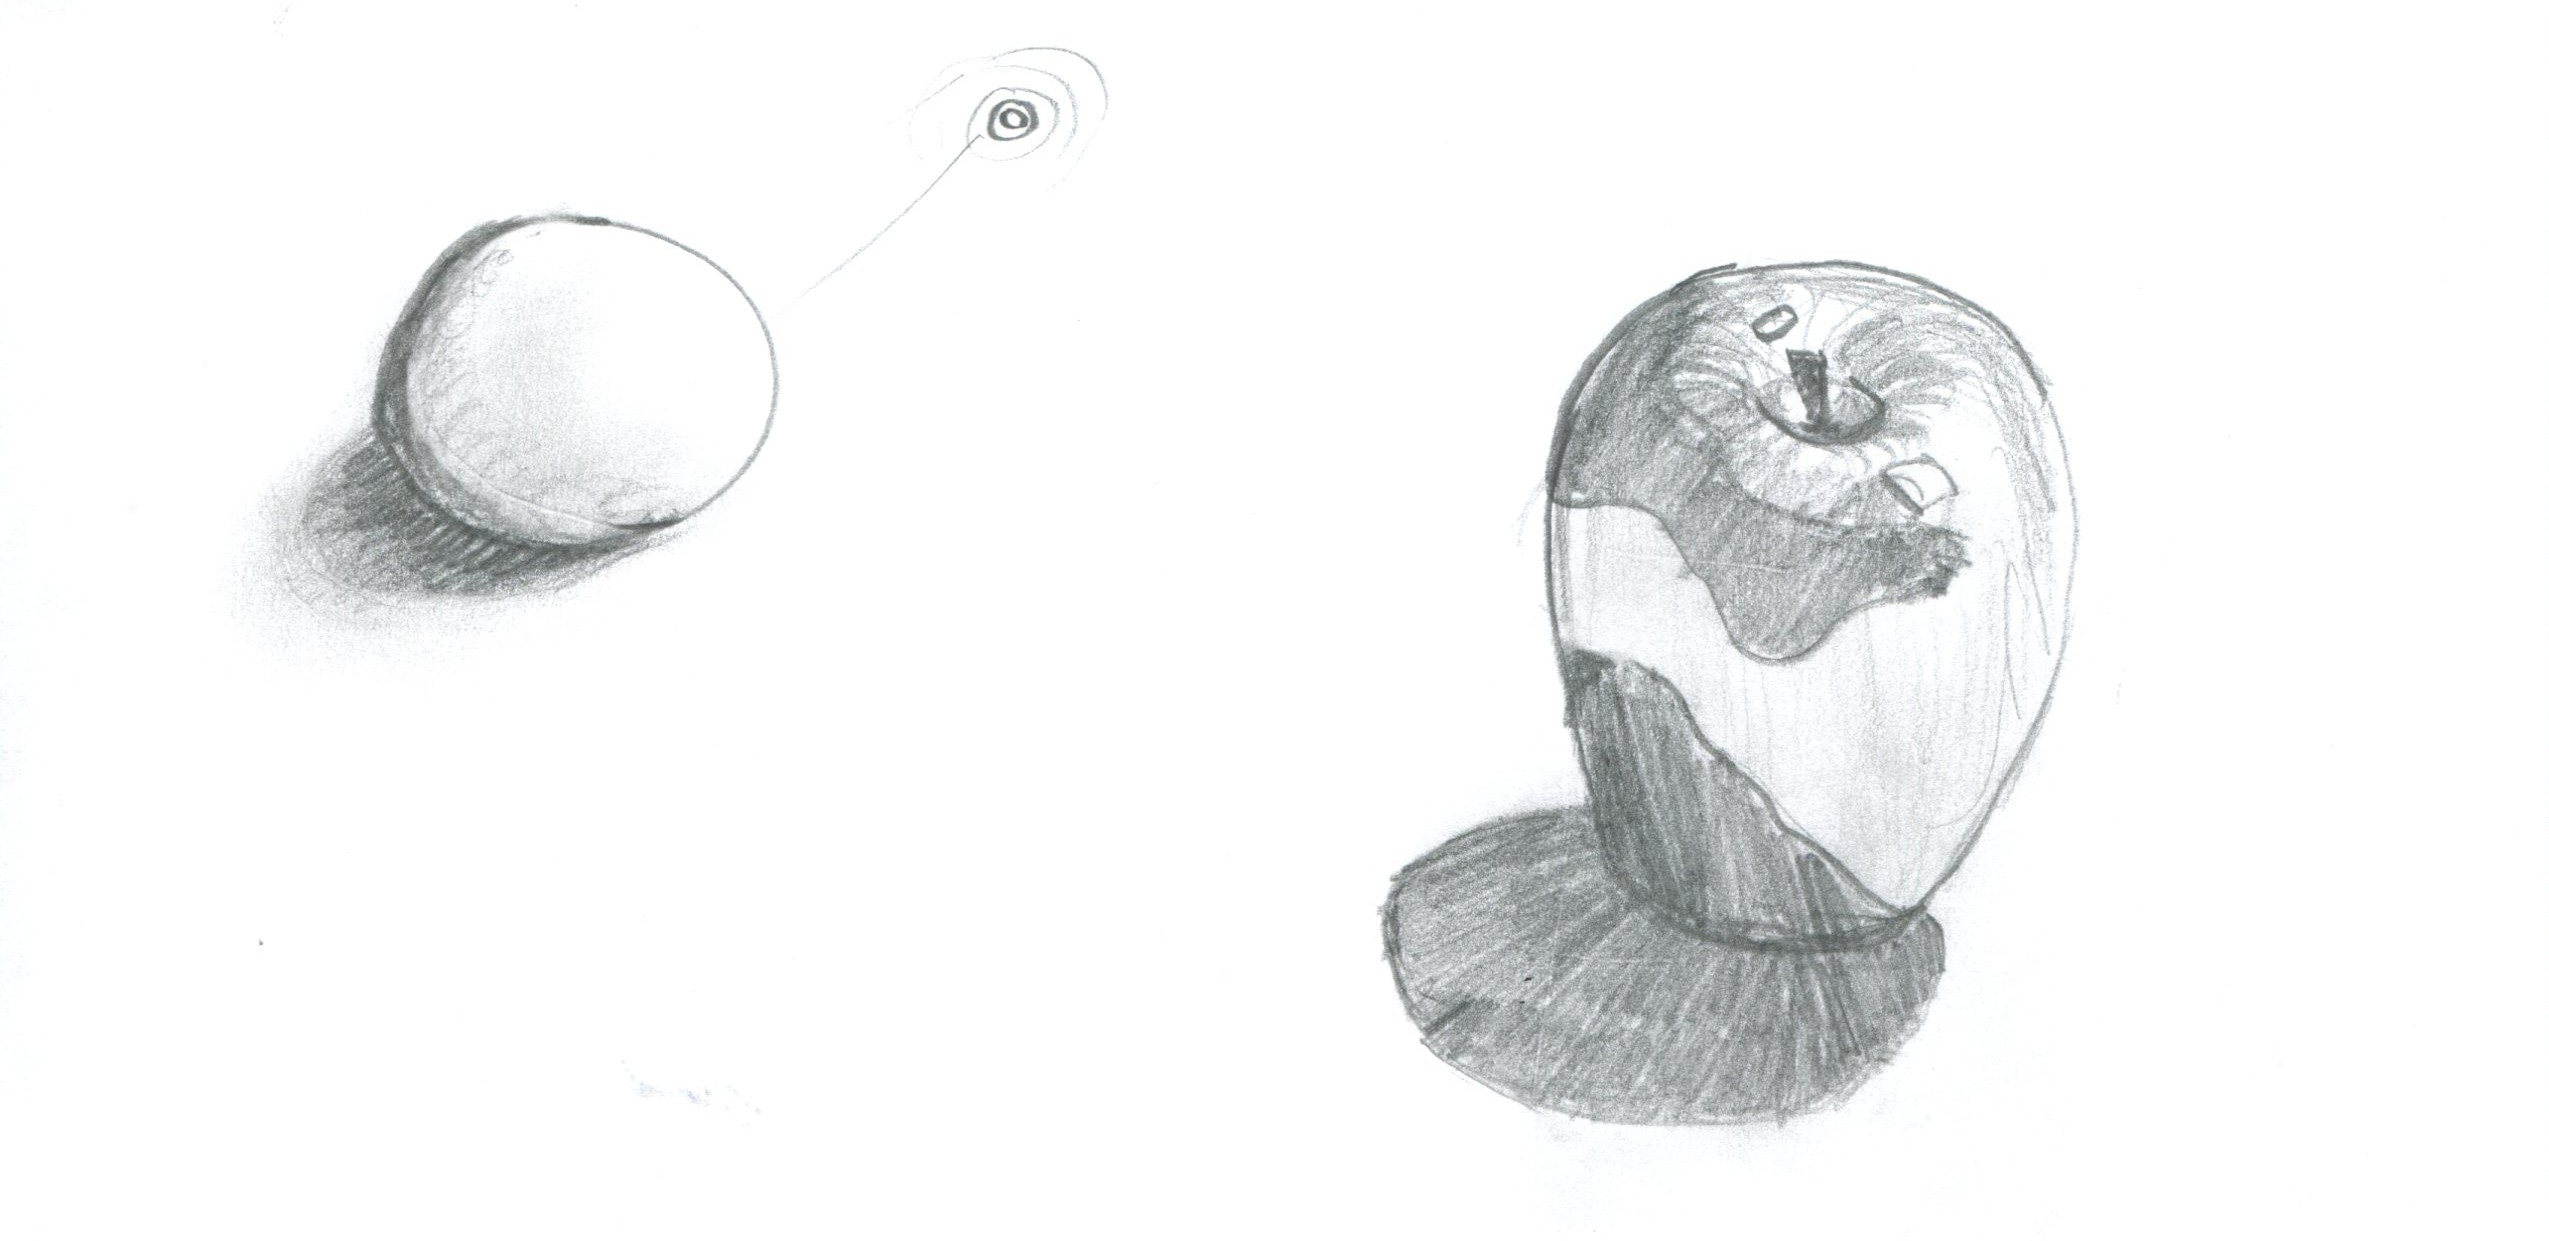 How to draw a Sphere & an Apple.